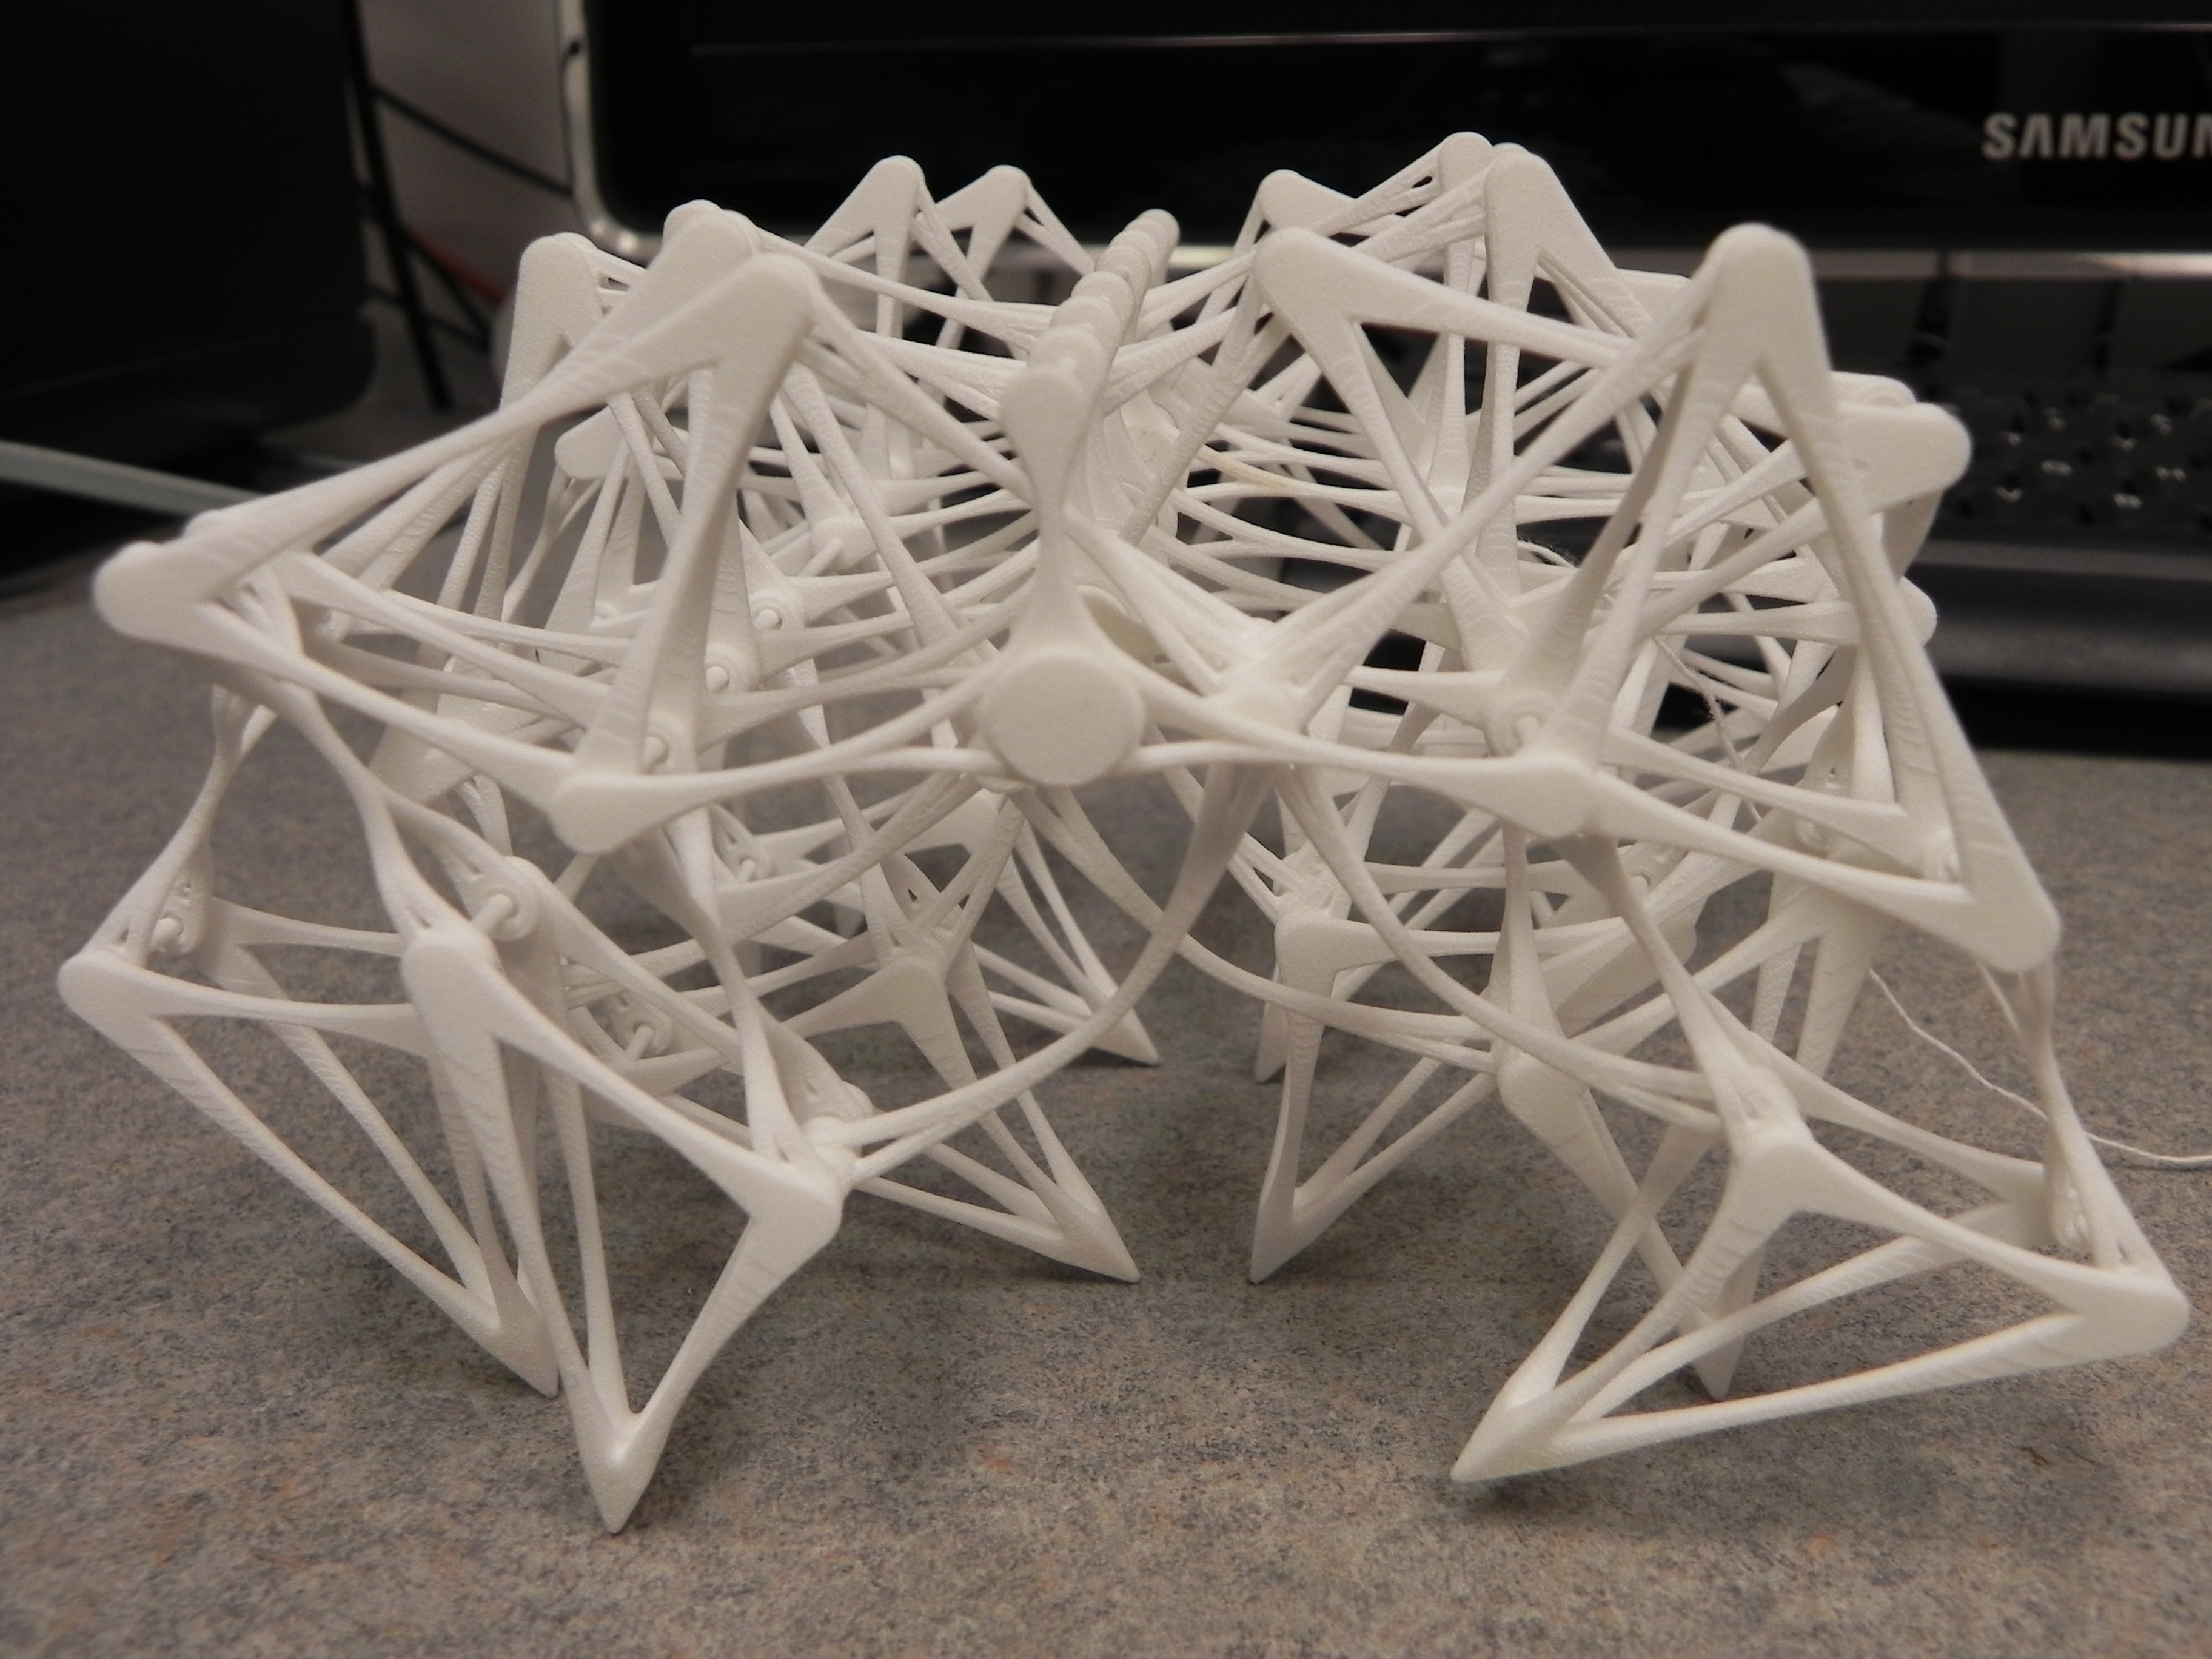 Picture of 3D Printed Theo Jansen Strandbeest